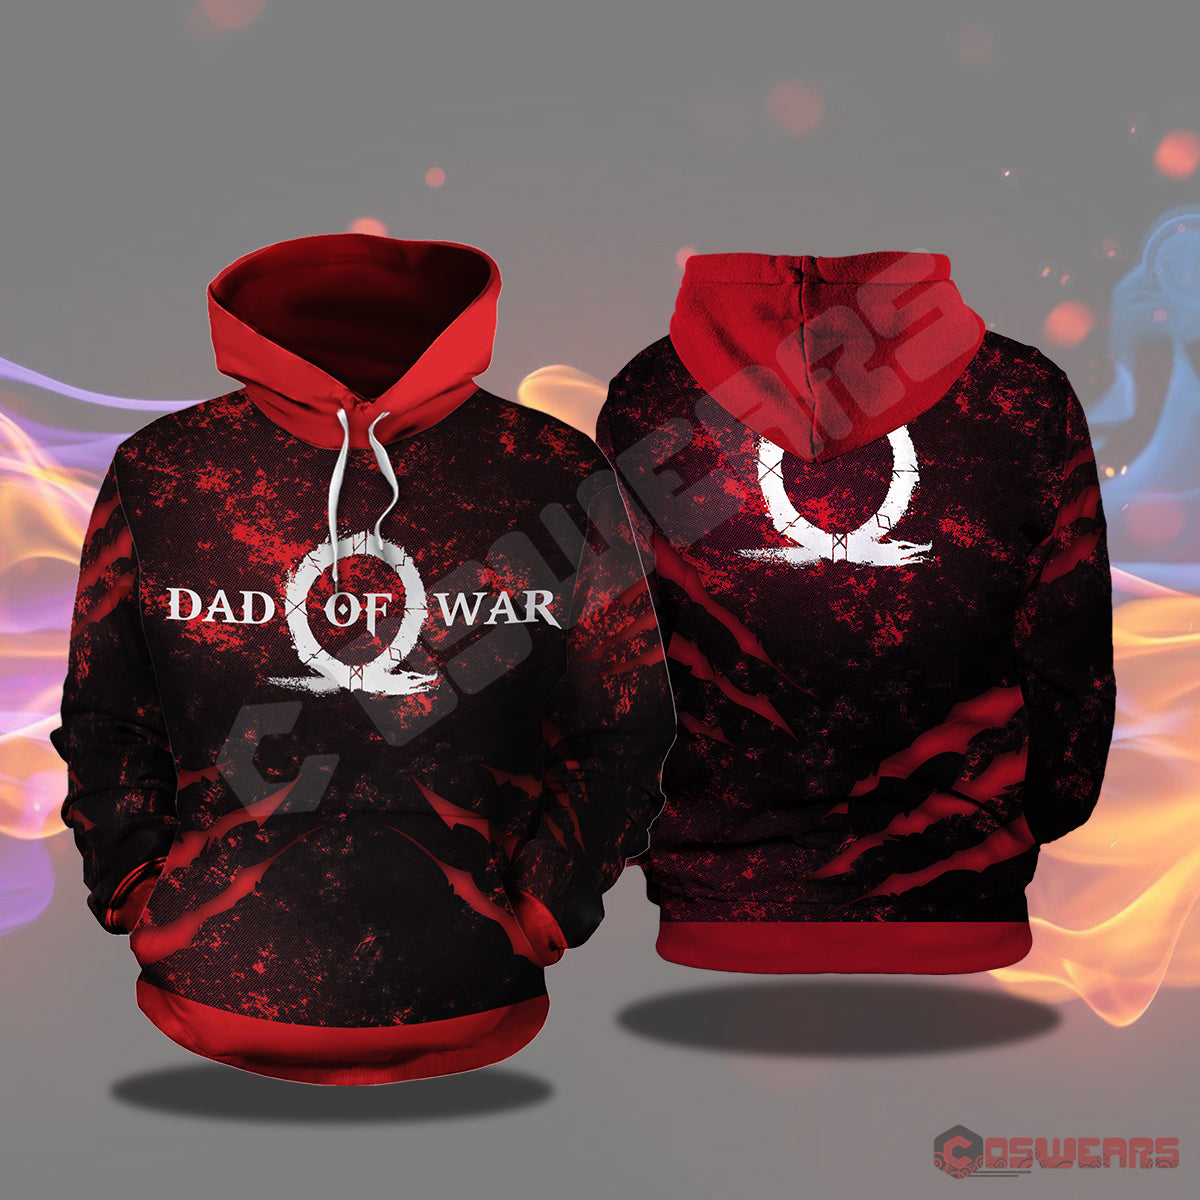 God of War: Dad of War Pullover Hoodie